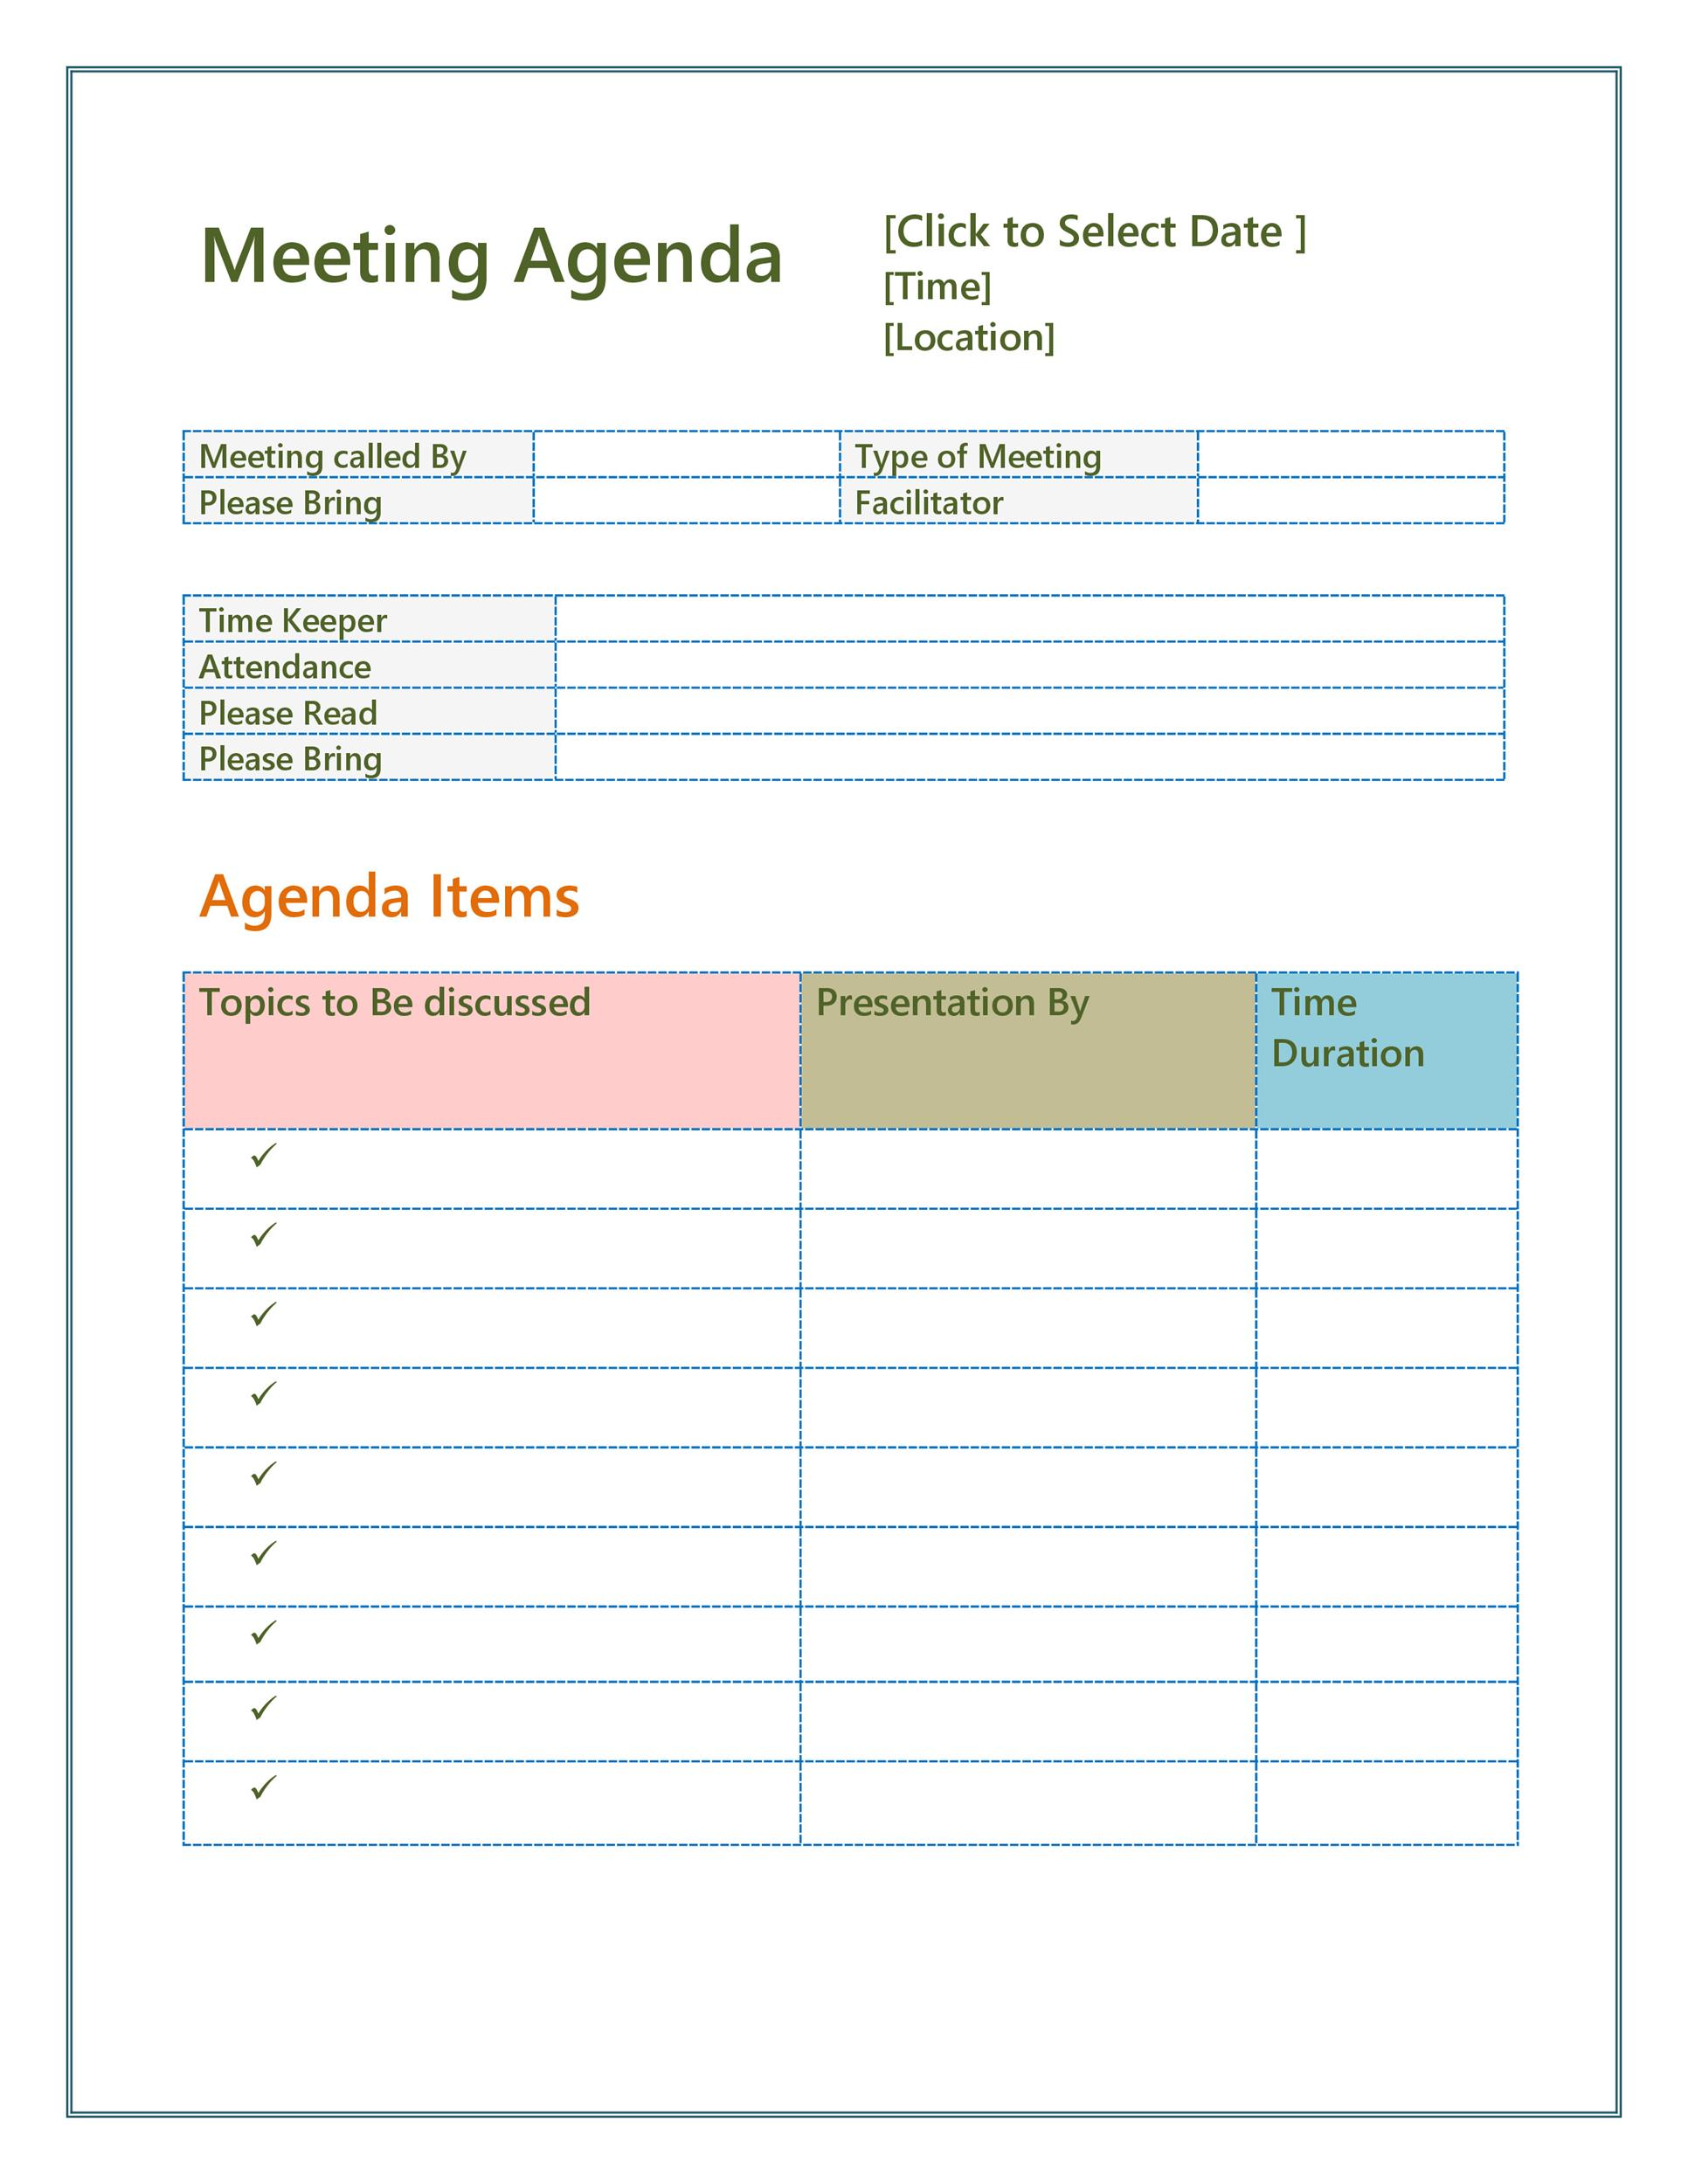 Conference Schedule Template from templatelab.com